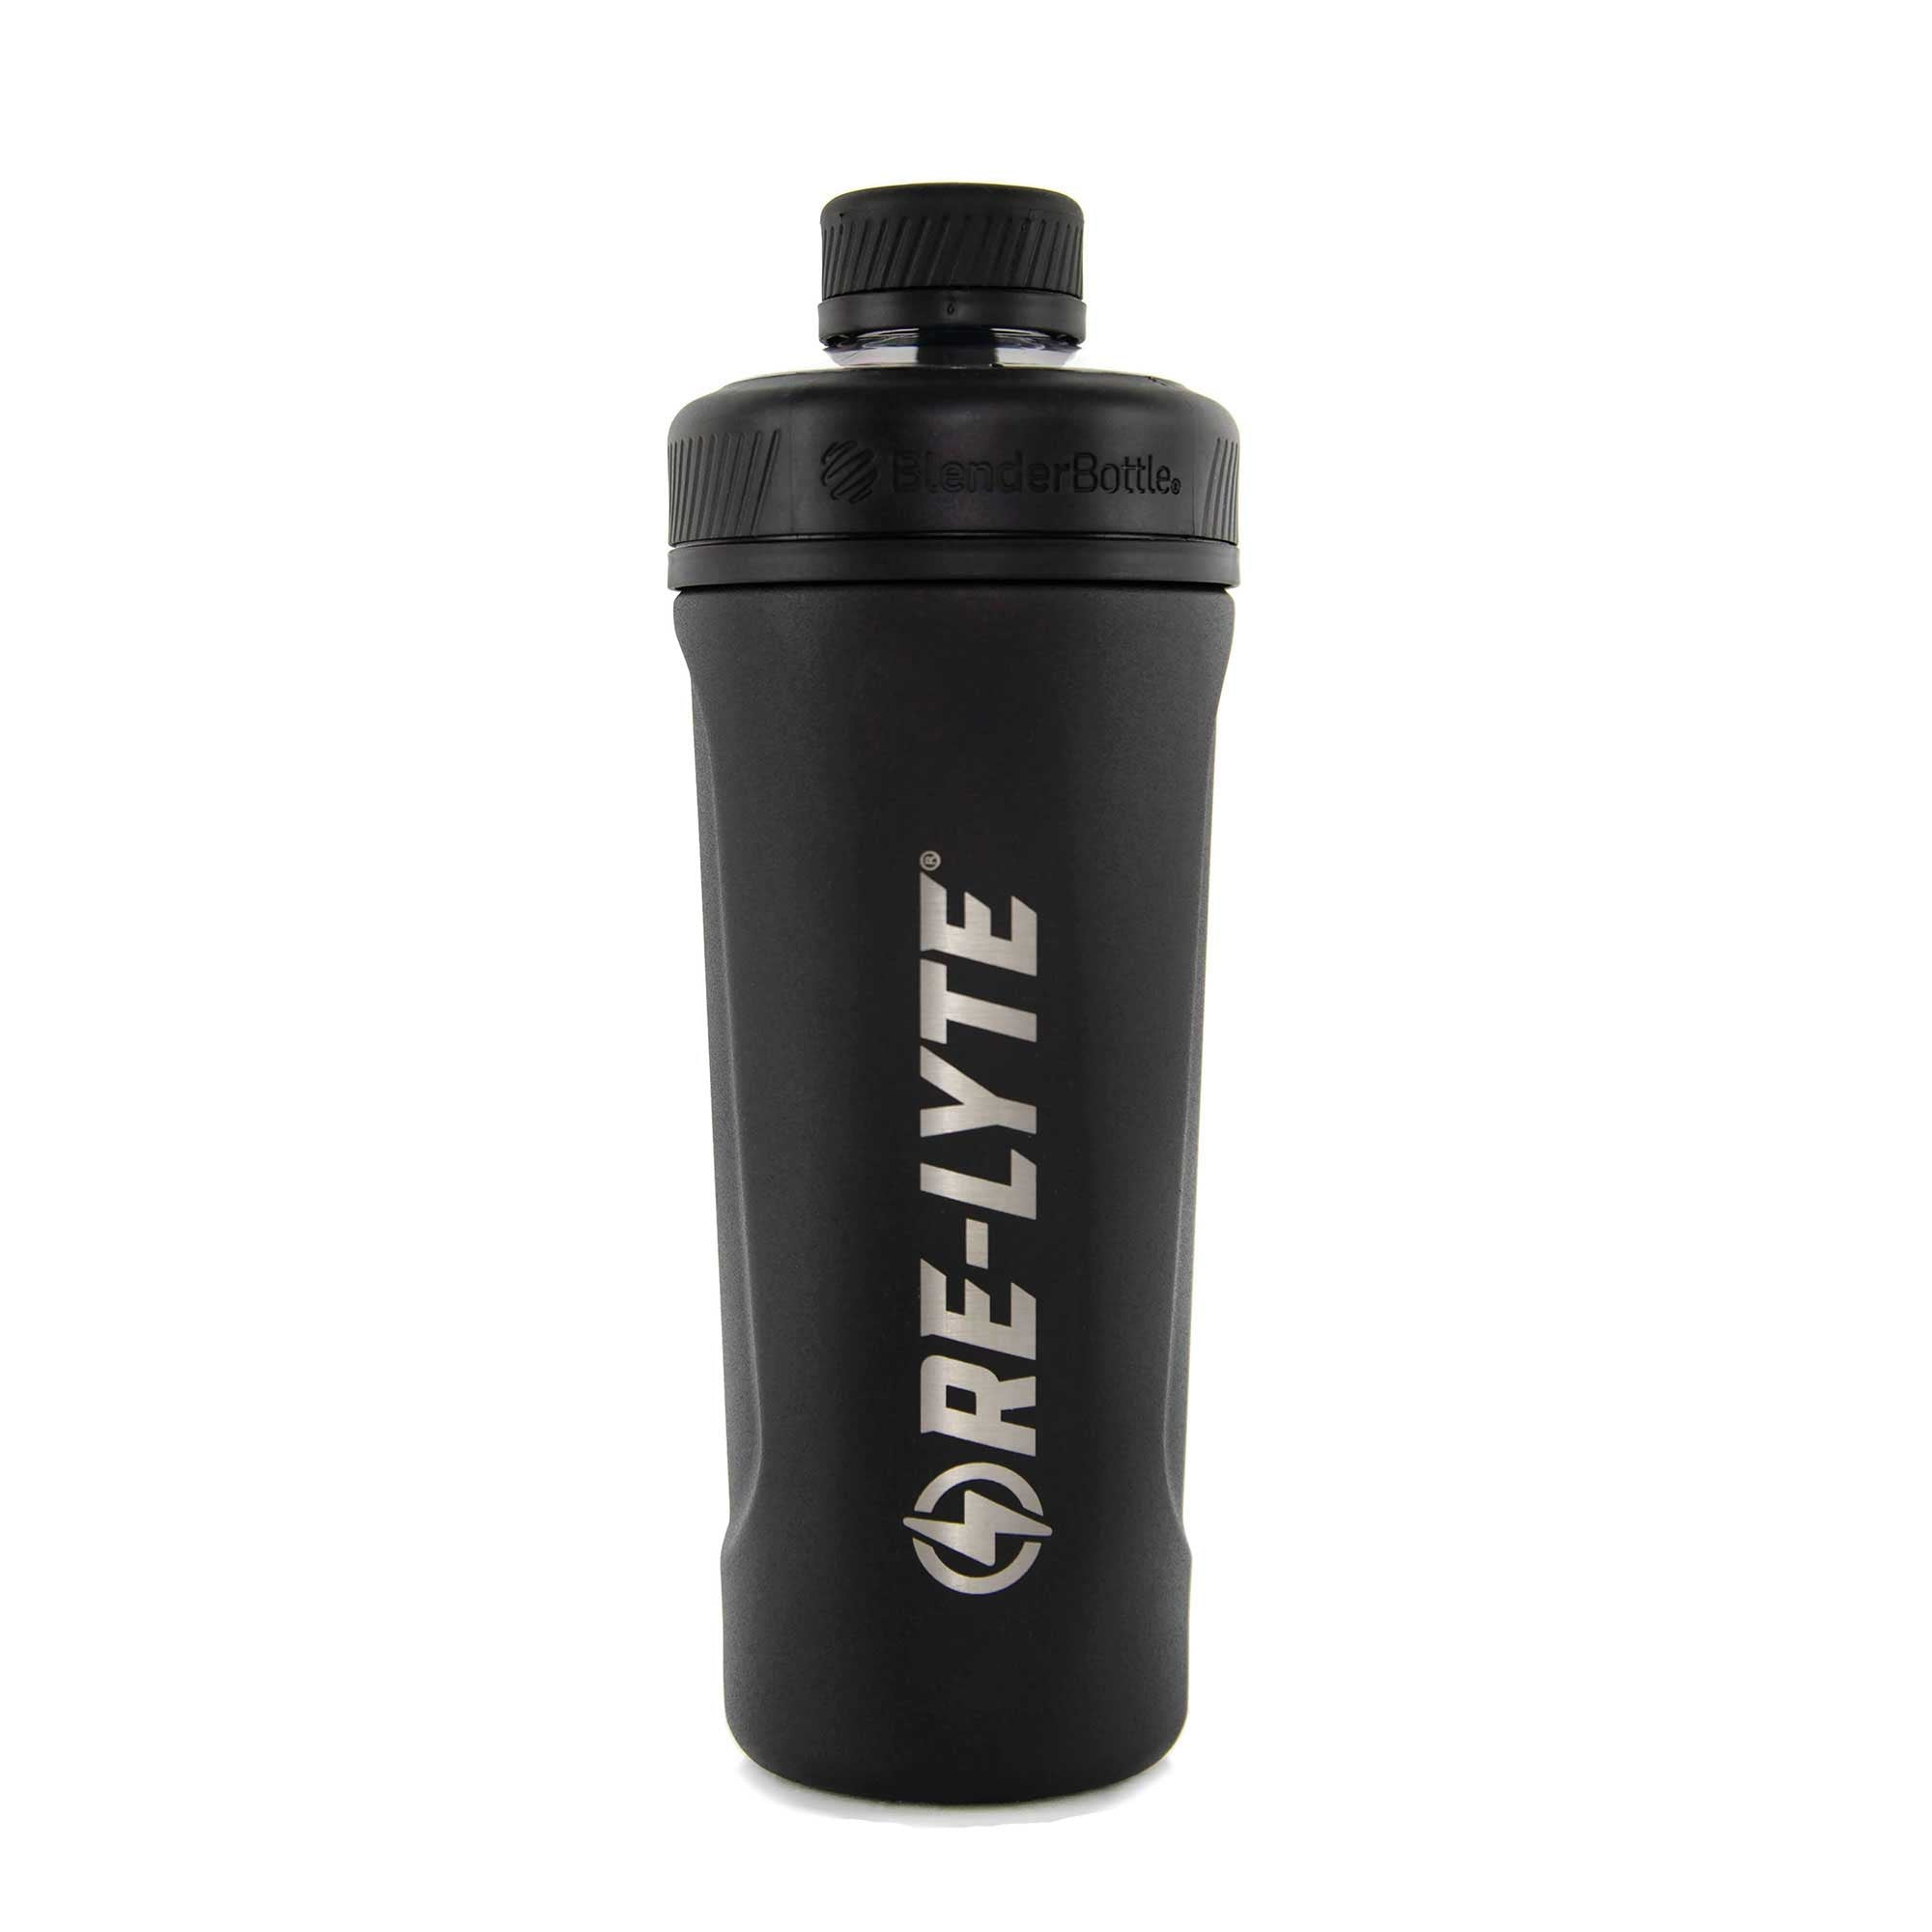 Re-Lyte Blender Bottle